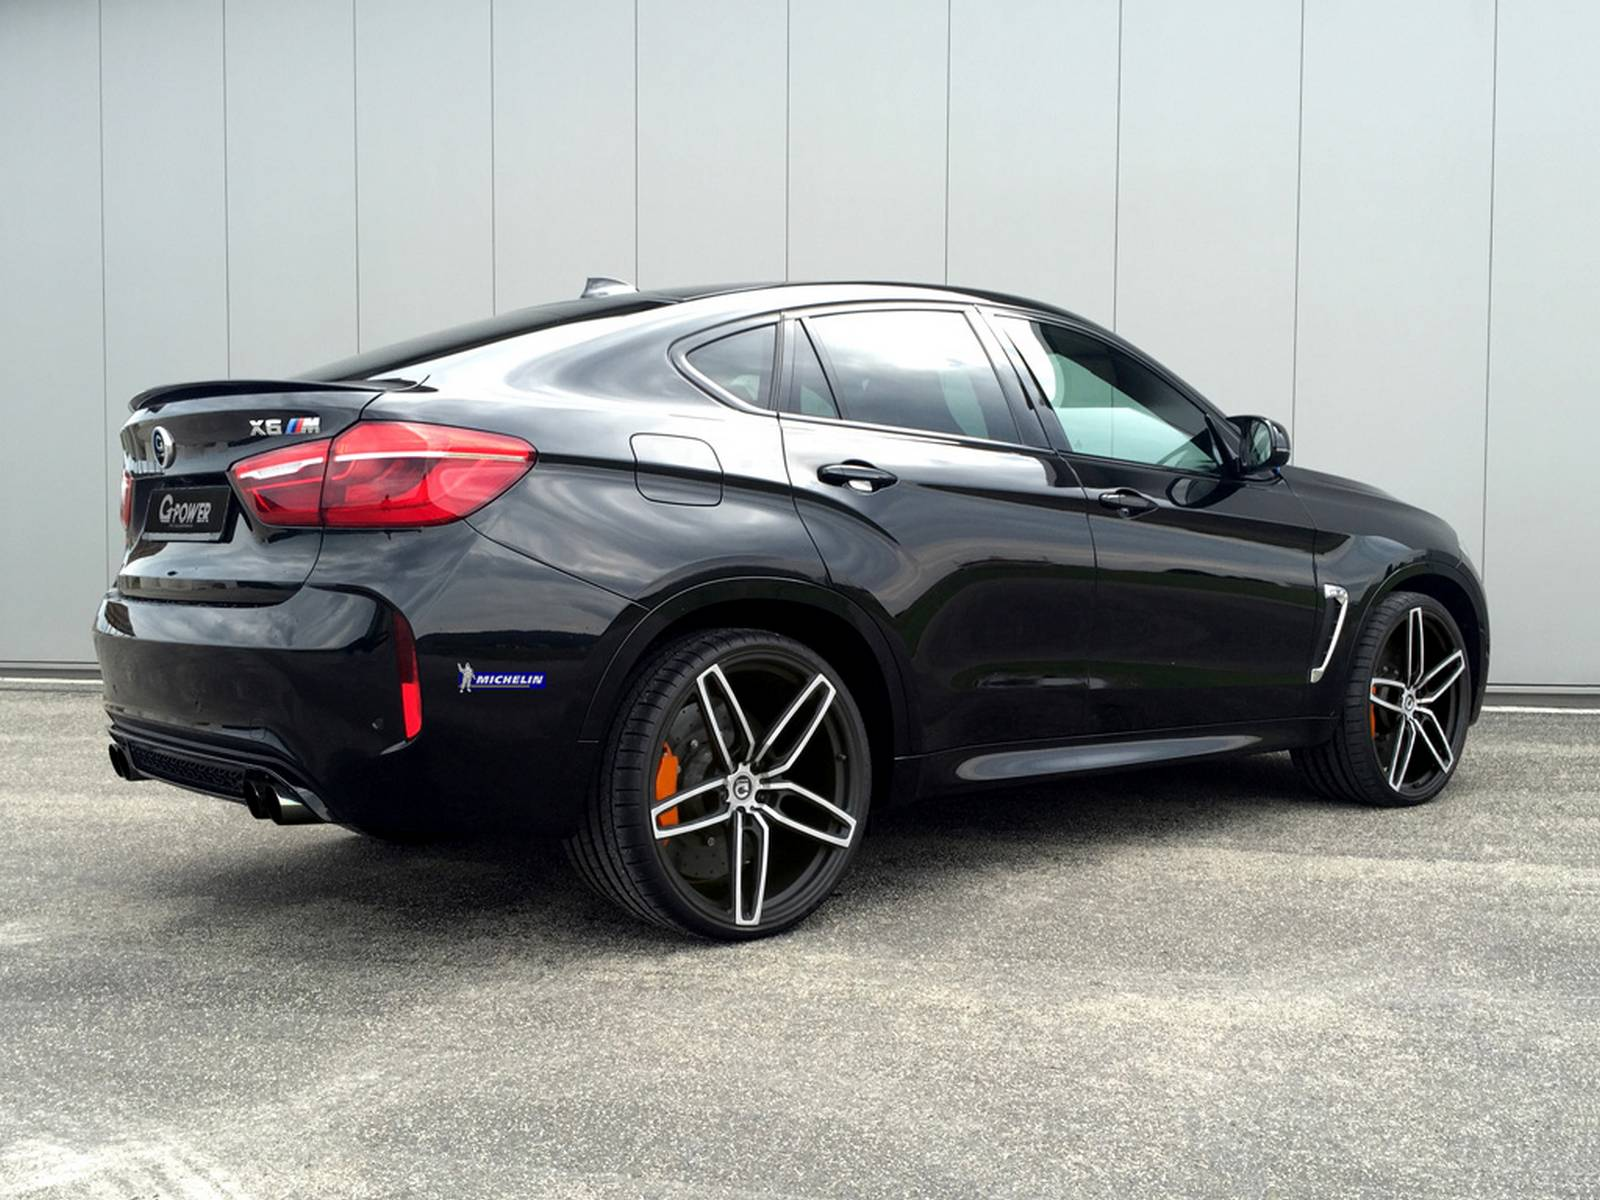 official g power bmw x6 m with 650hp gtspirit. Black Bedroom Furniture Sets. Home Design Ideas